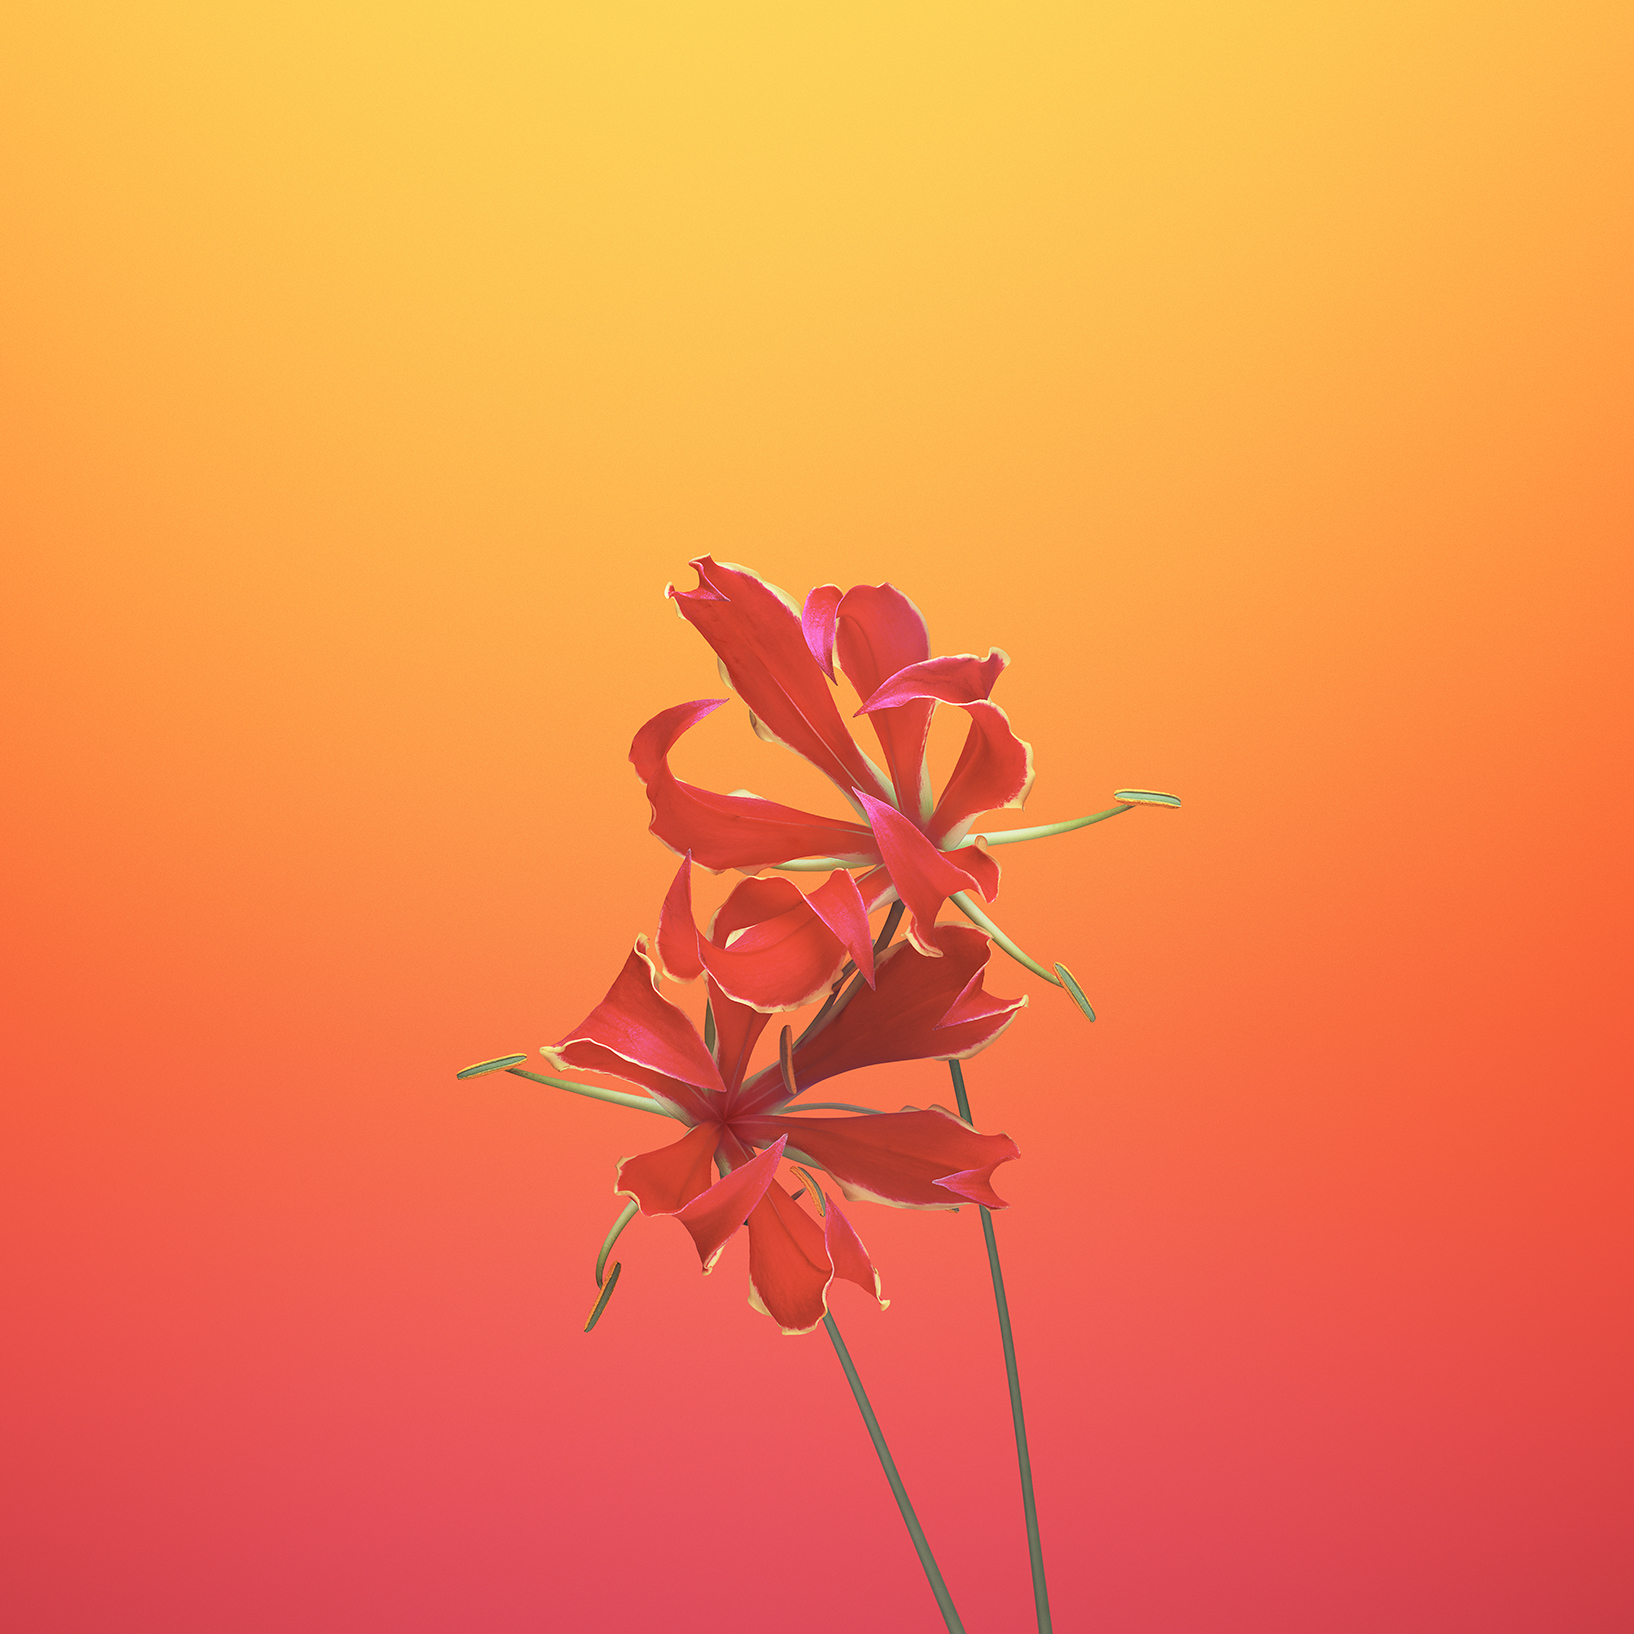 ios_11_gm_wallpaper_flower_gloriosa